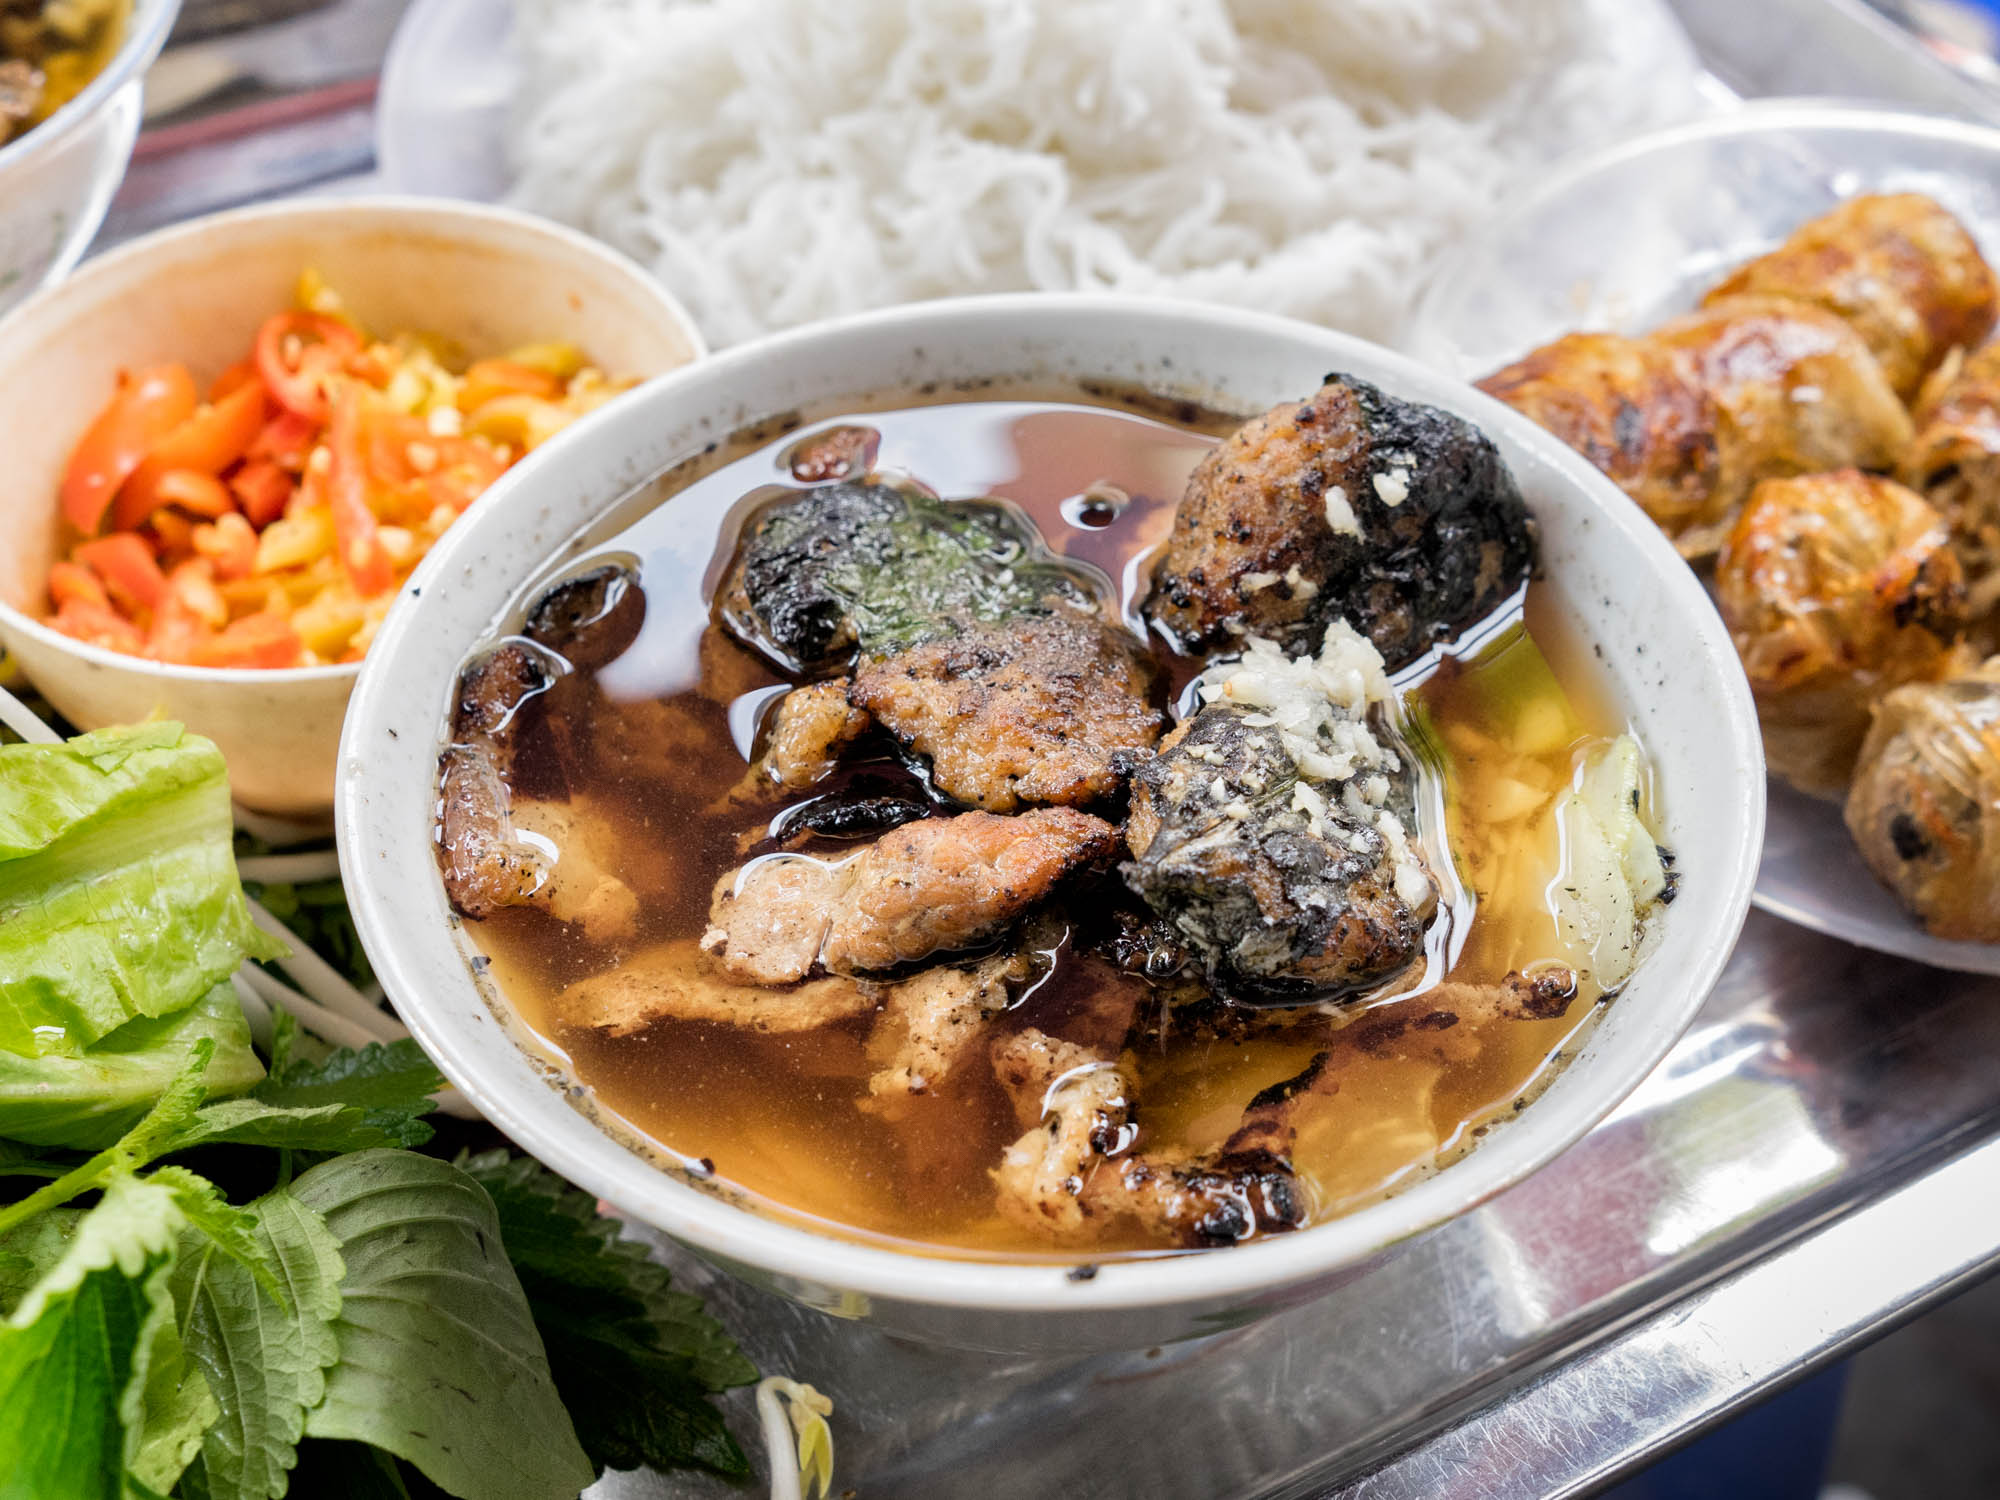 Why Does Vietnam Have a Mid-Day Siesta? I Blame the Bun Cha